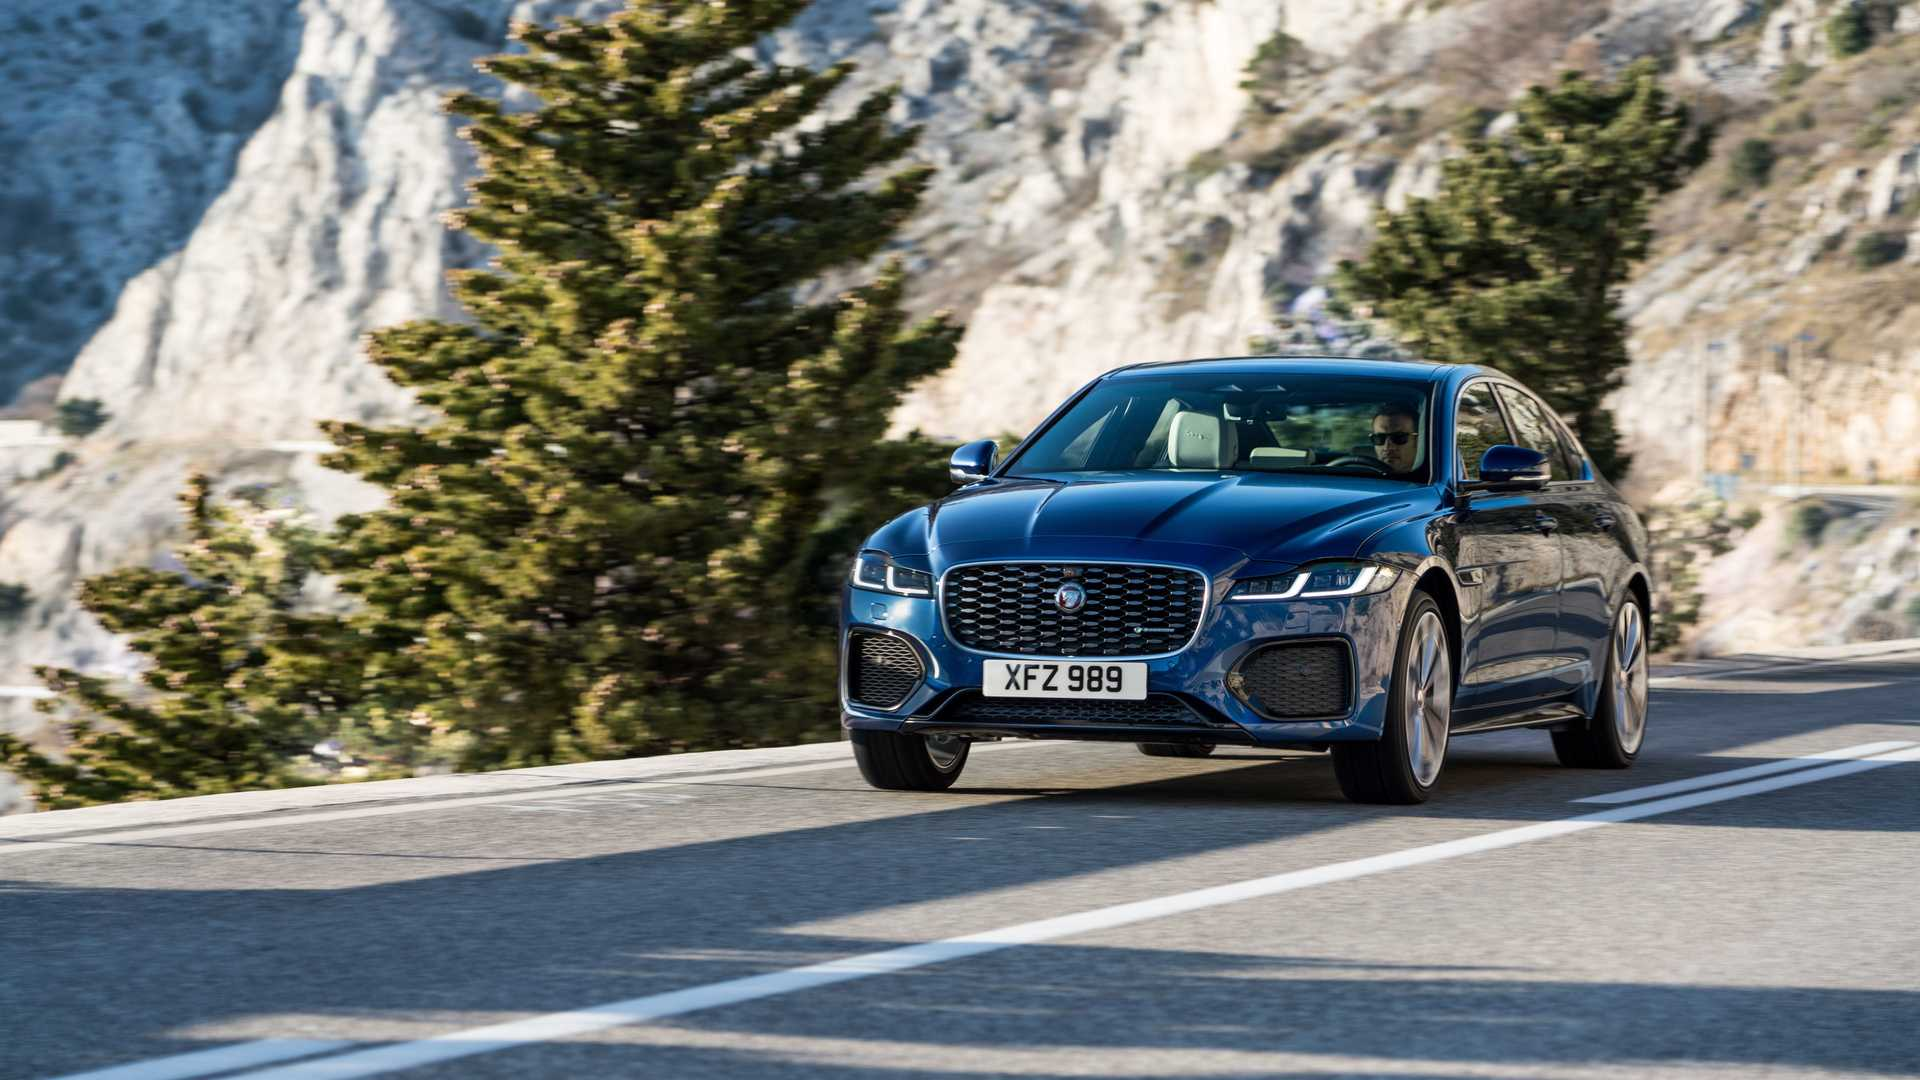 2021 Jaguar XF Is Refreshed, Targeting To Compete